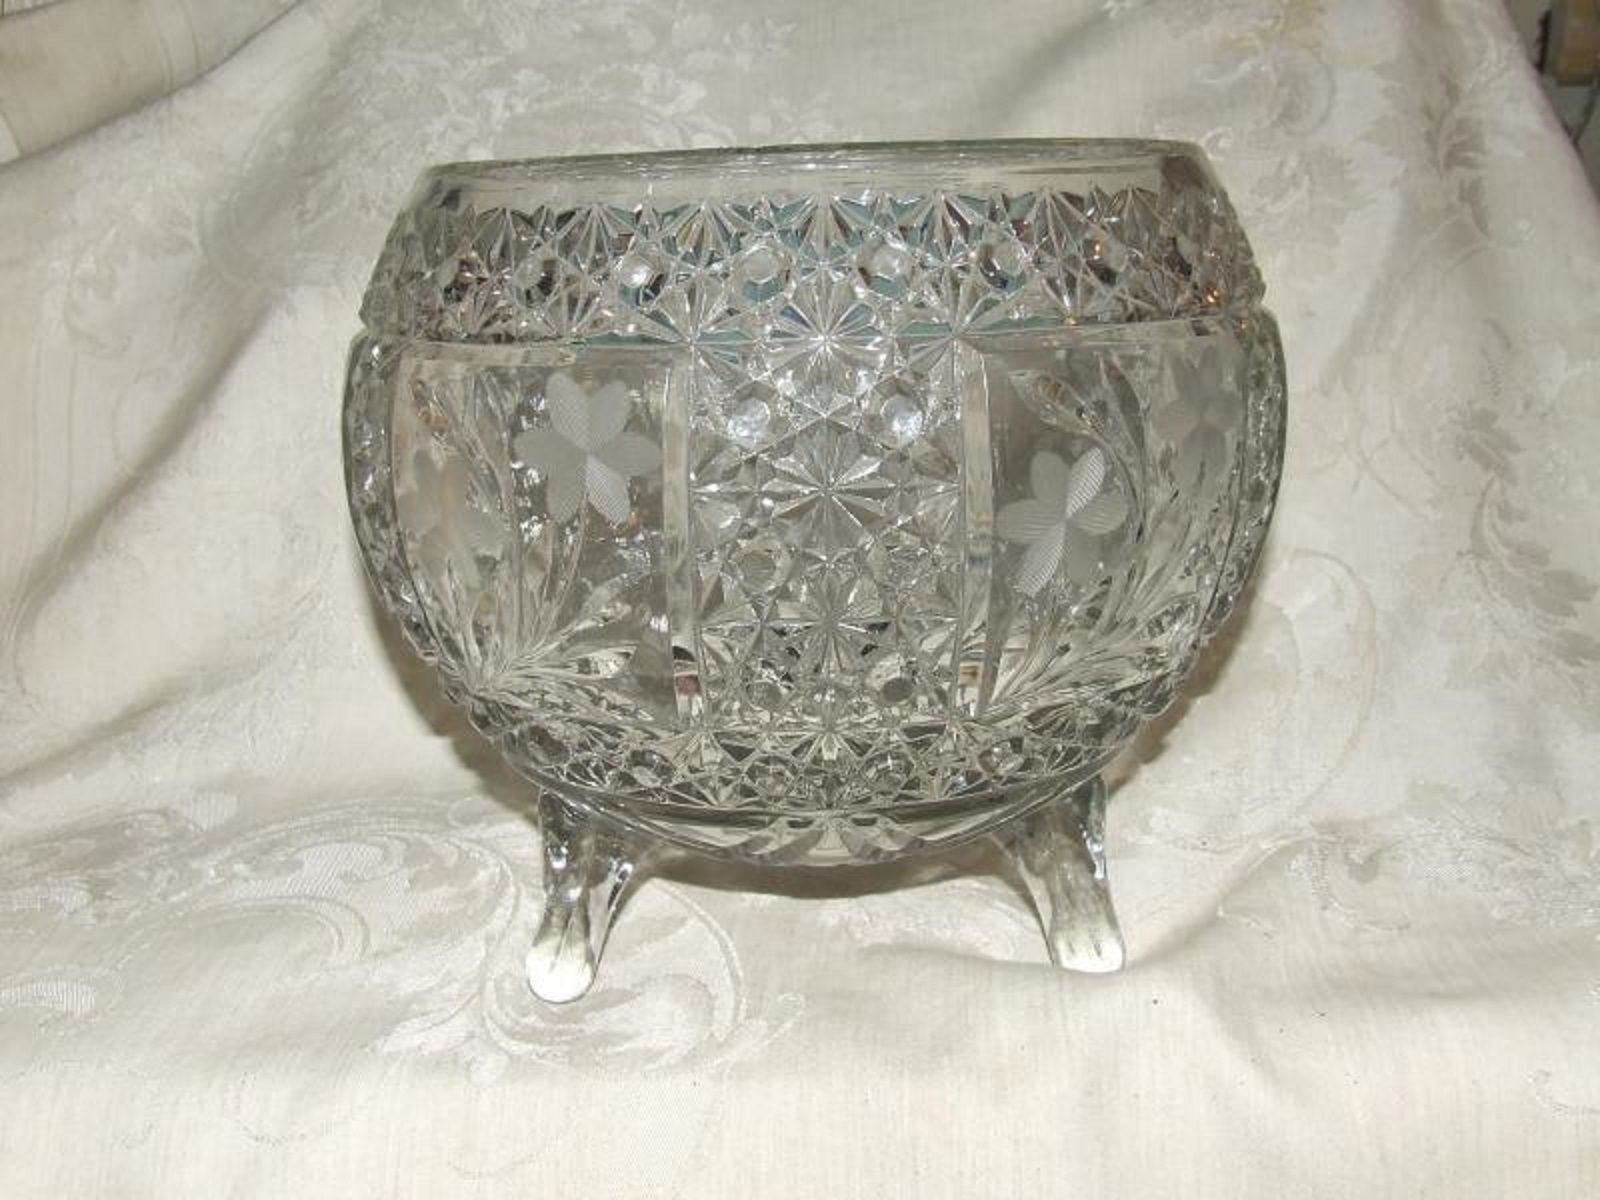 Primary image for McKee Glass SNAPPY Clear Cane Daisy Button ROSE BOWL 3 Toes 4 Floral Etch Panels